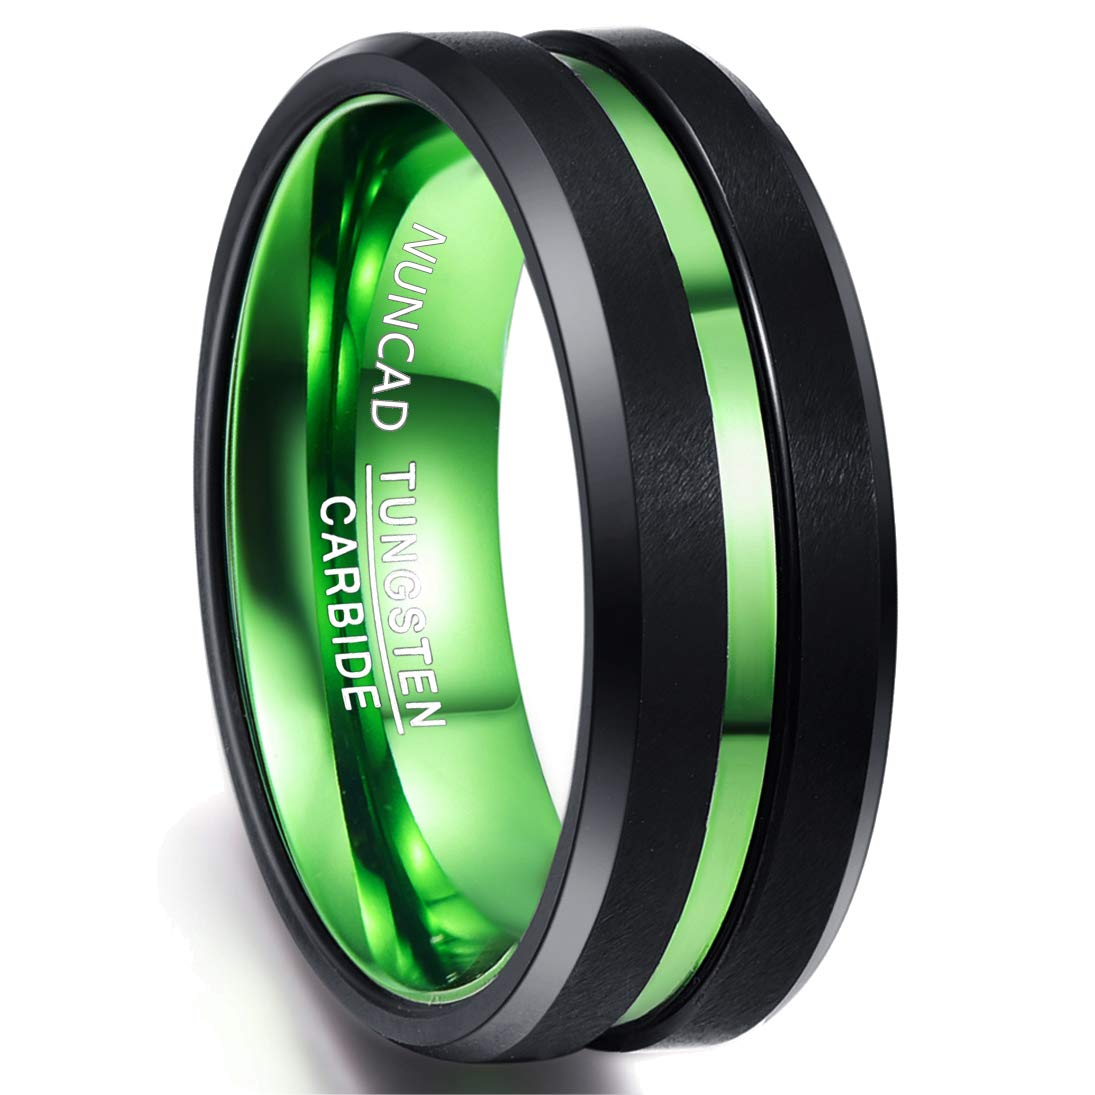 Nuncad Classic Two Tone Tungsten Rings for Men Green Groove Black Brushed Comfort Fit Size 11